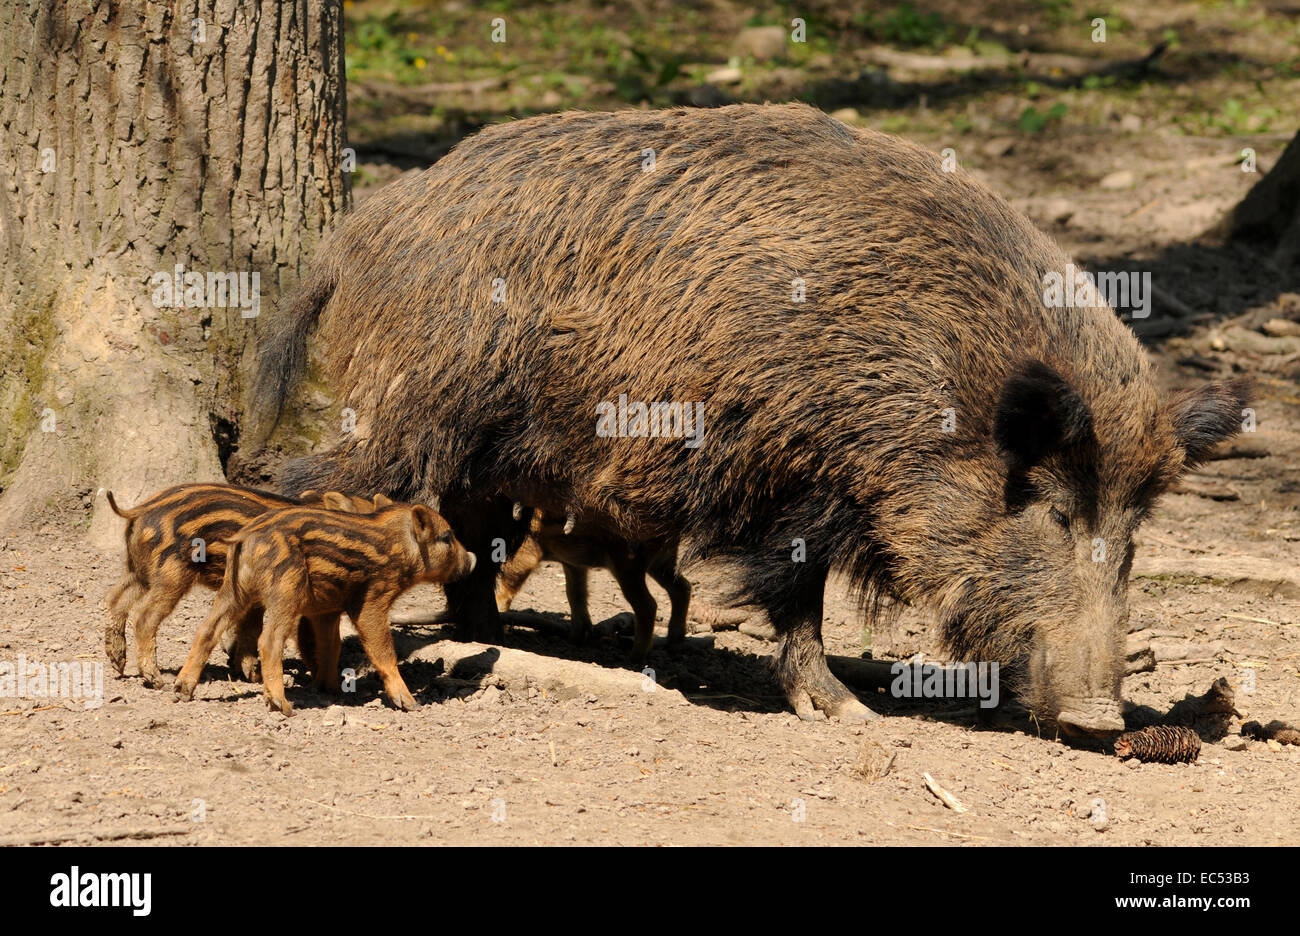 Sow with piglets - Stock Image